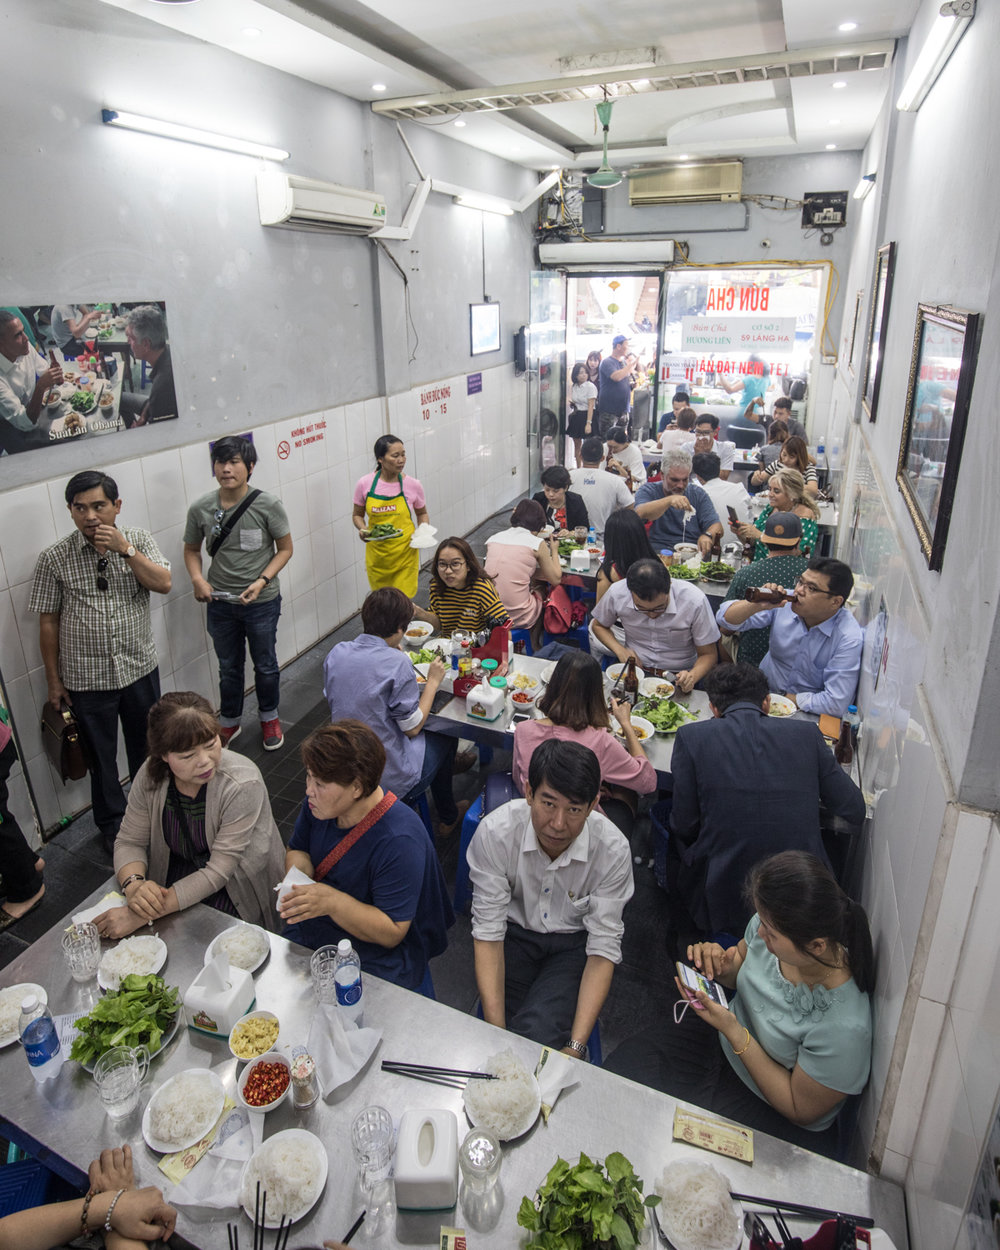 Bun Cha Huong Lien where Obama & Bourdain made famous. Now it's one of the most popular places in town.